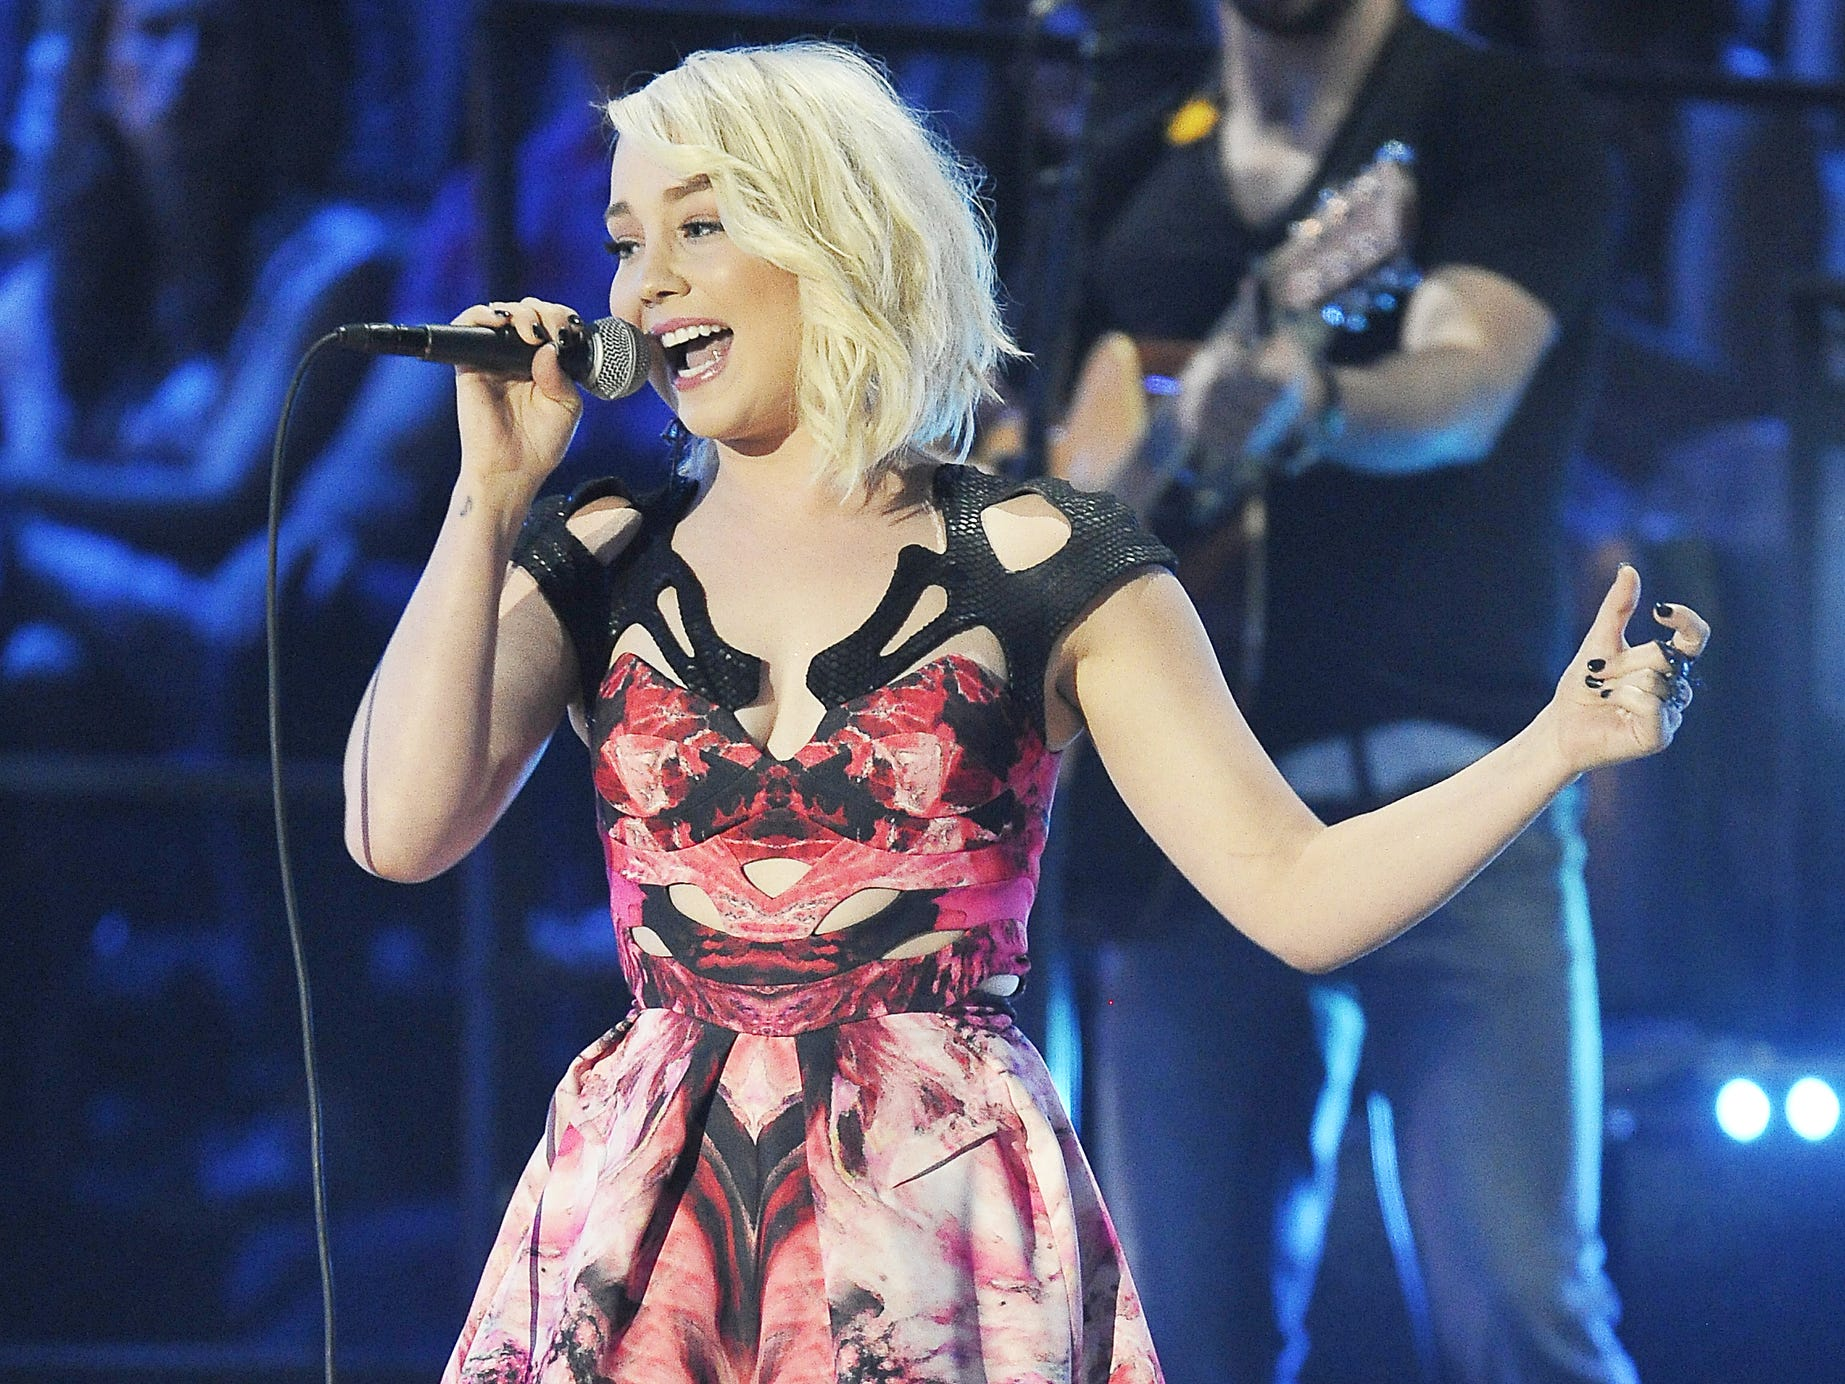 RaeLynn is scheduled to play the Chevy Riverfront Stage at CMA Fest 2019.